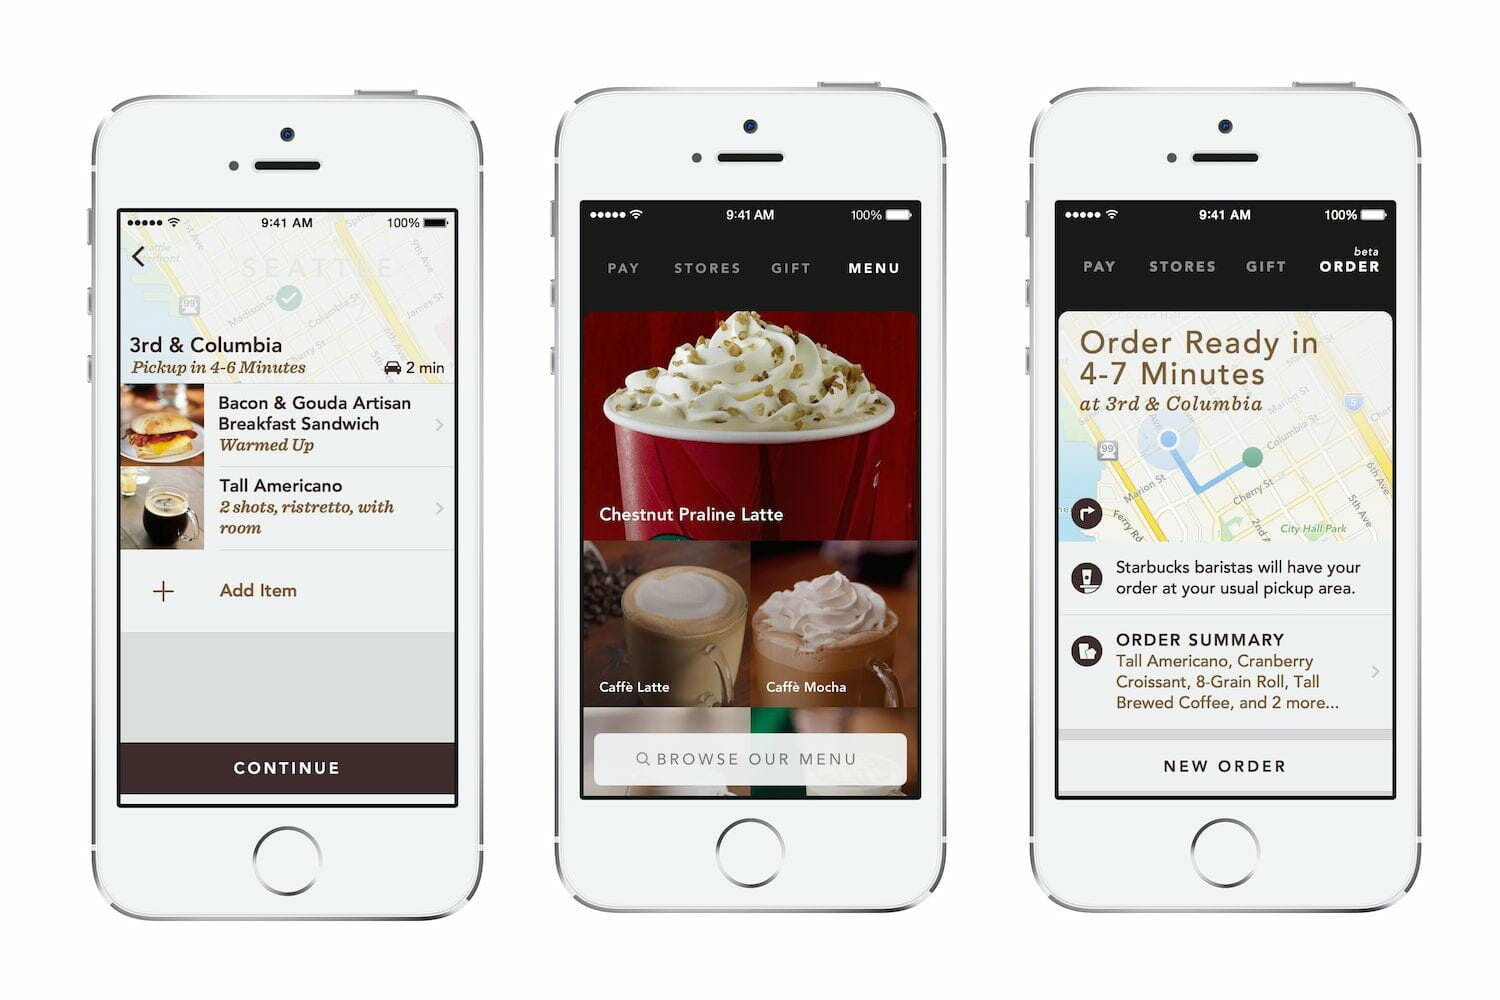 starbucks mobile order app